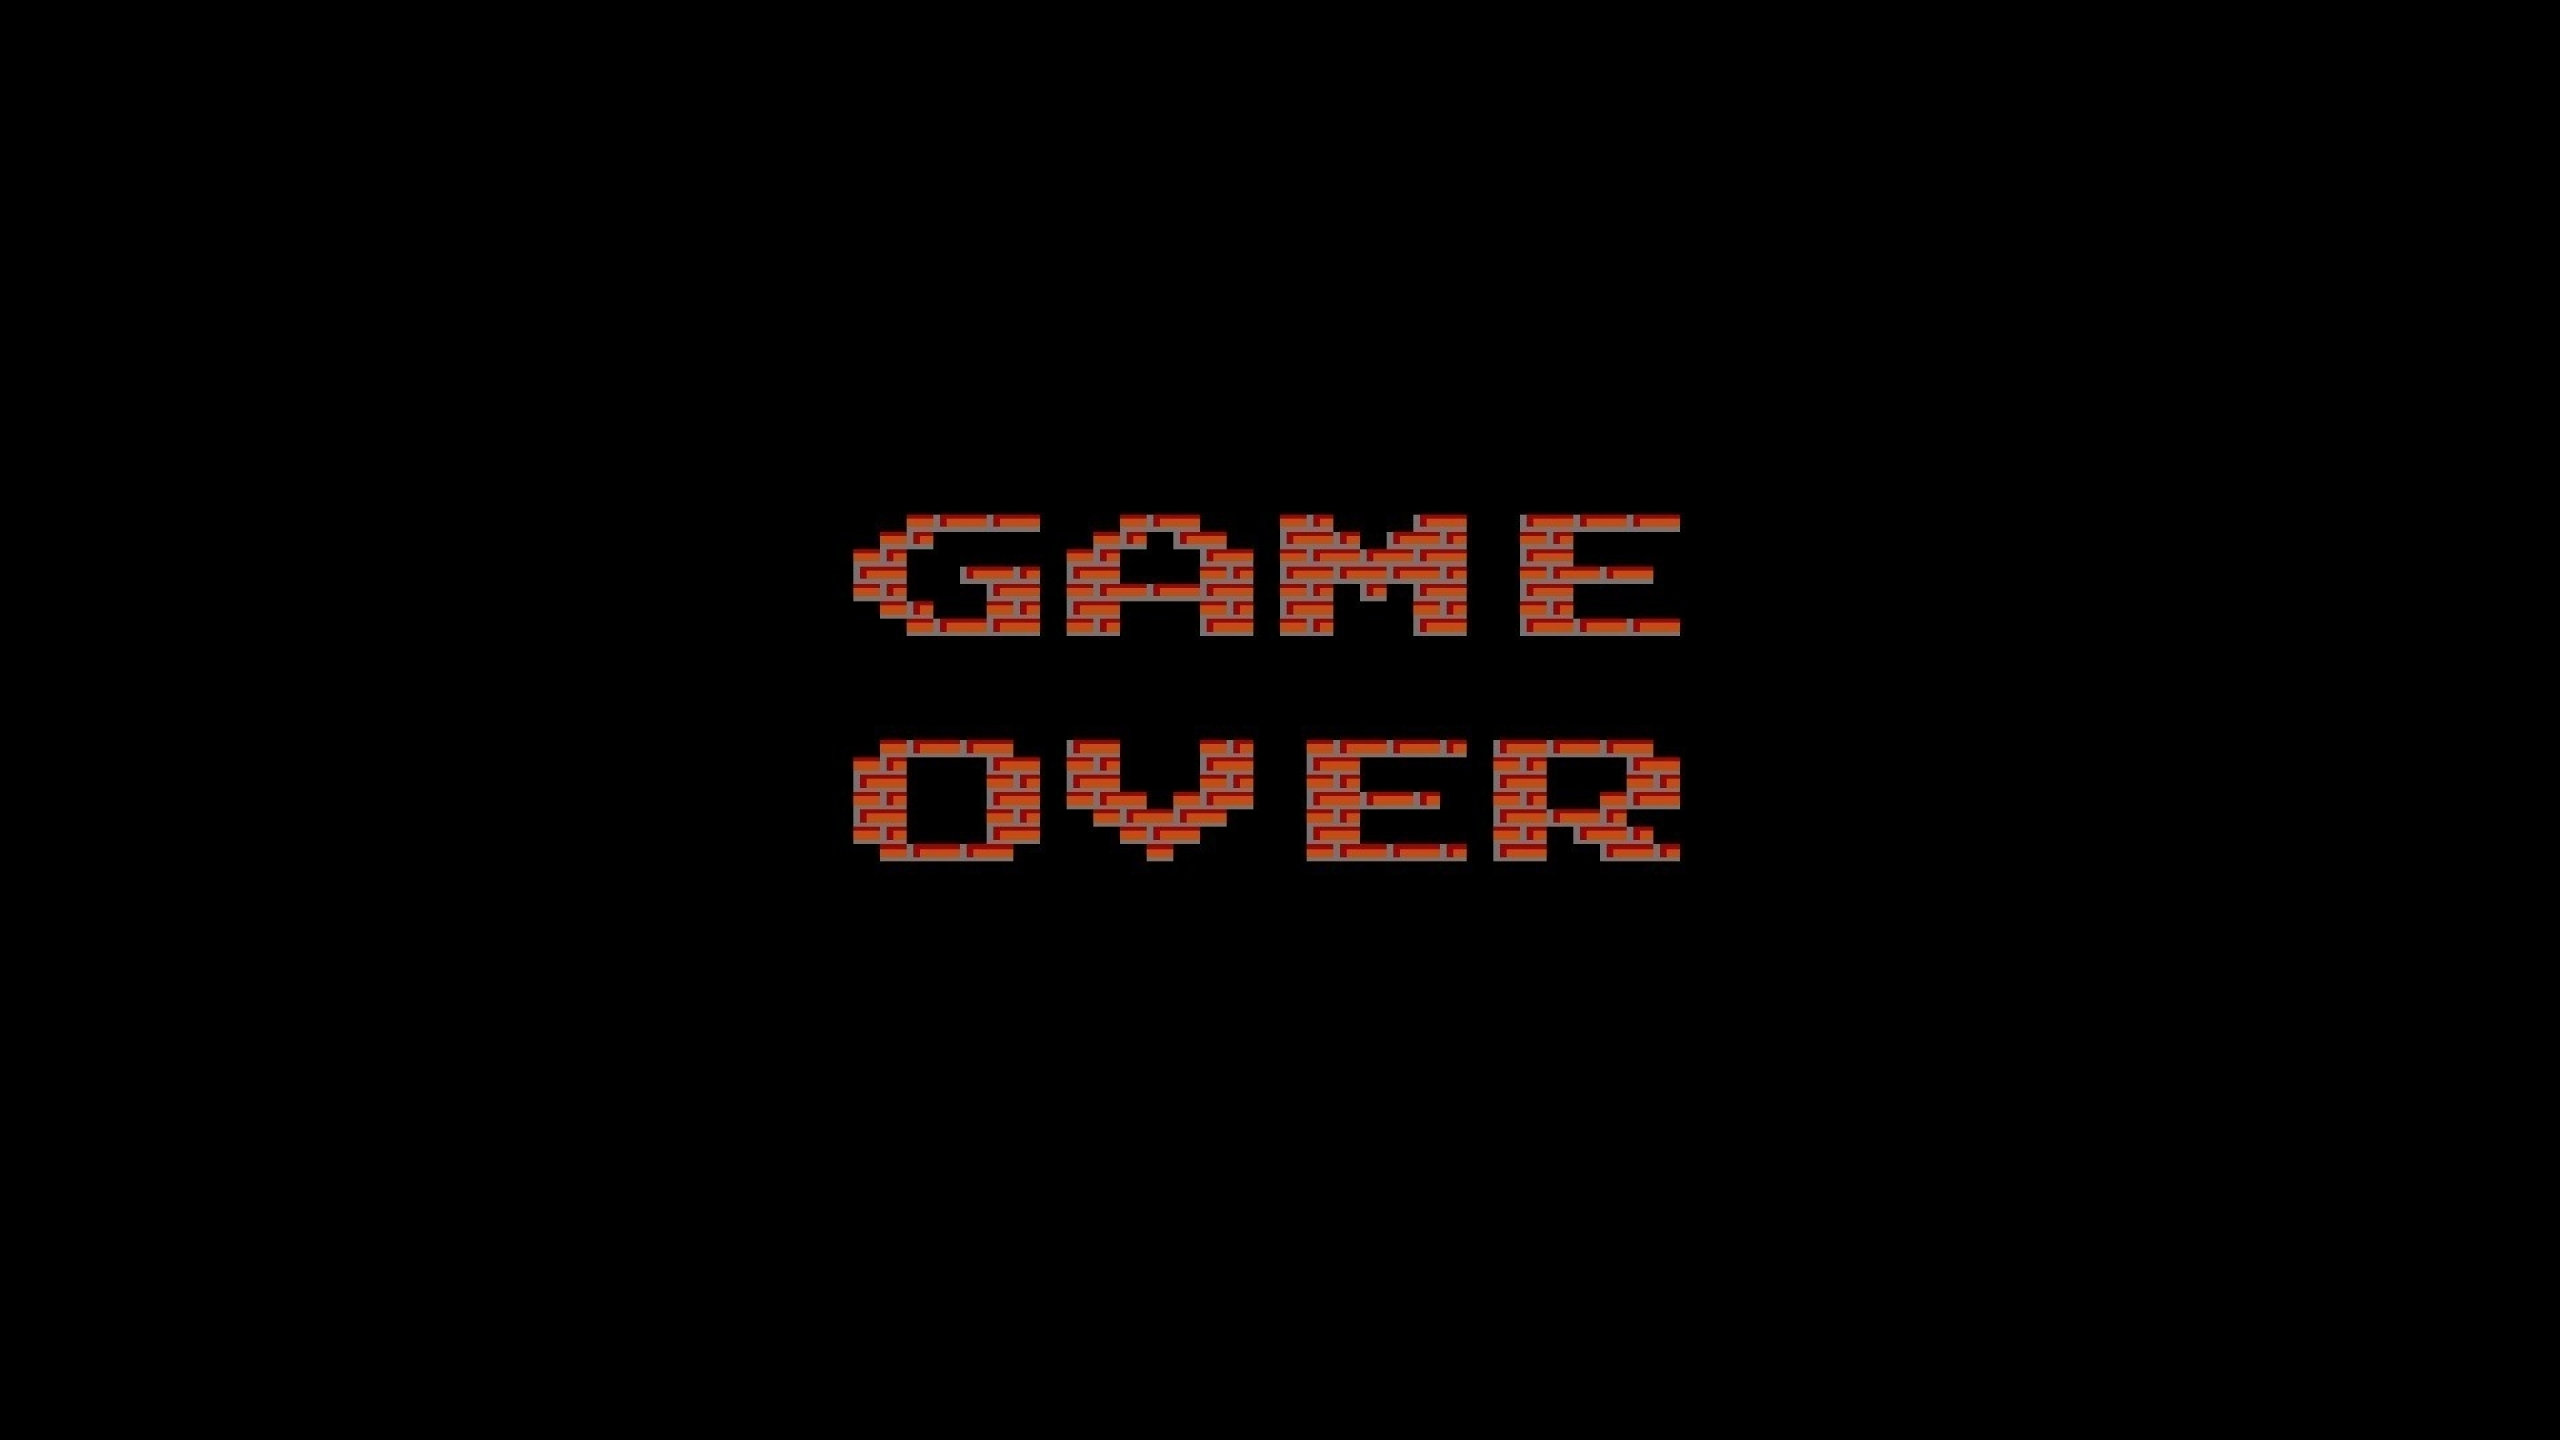 2560x1440 video games text typography game over famicom Wallpaper 2560x1440